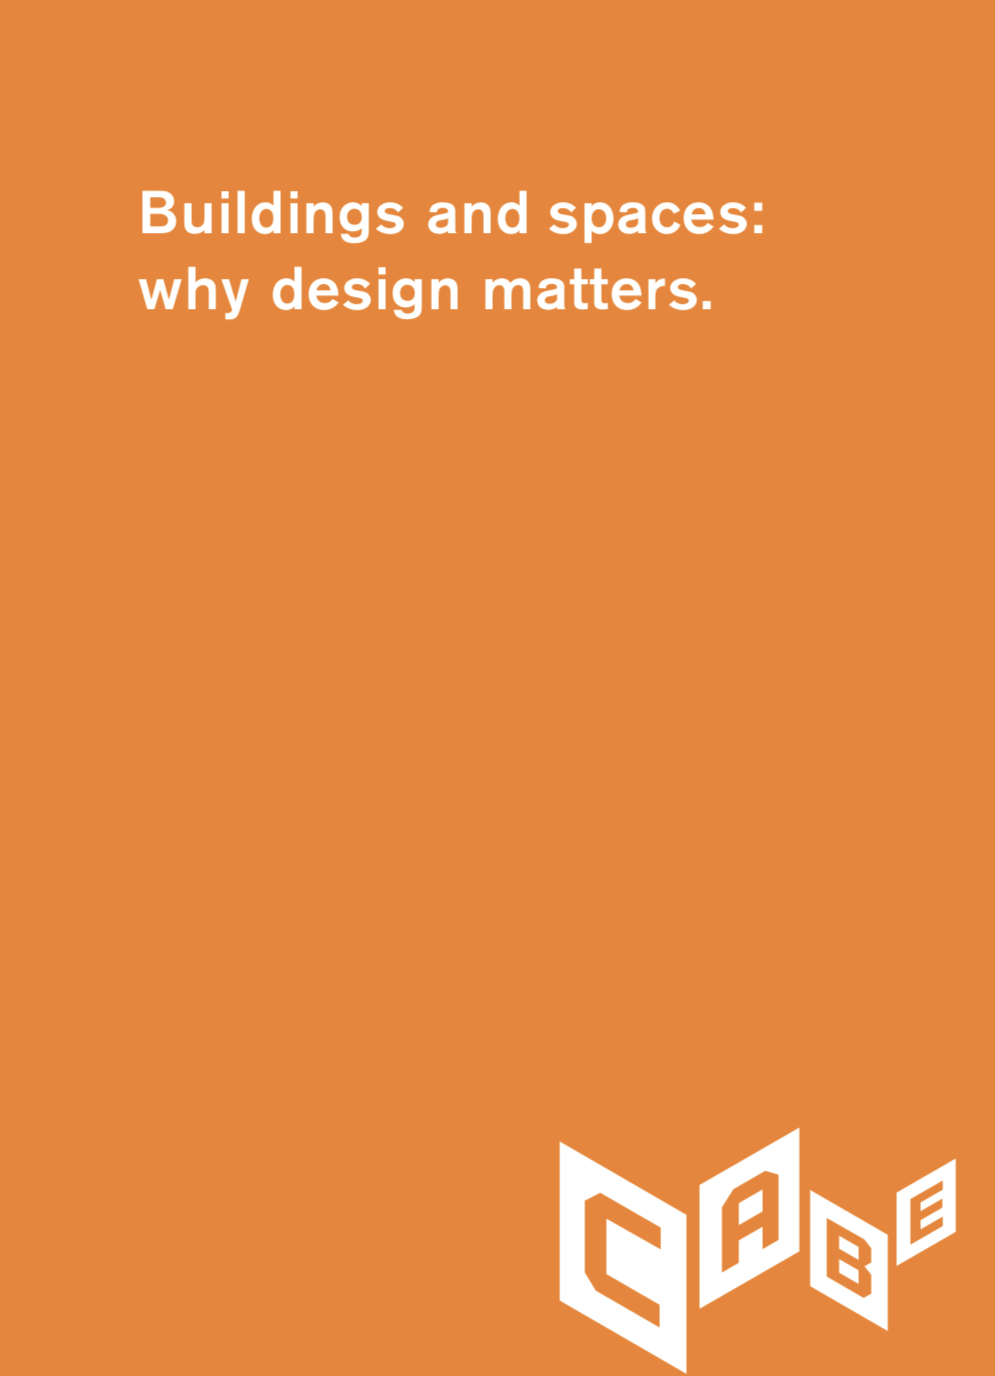 Buildings and spaces: why design matters, CABE, 2005